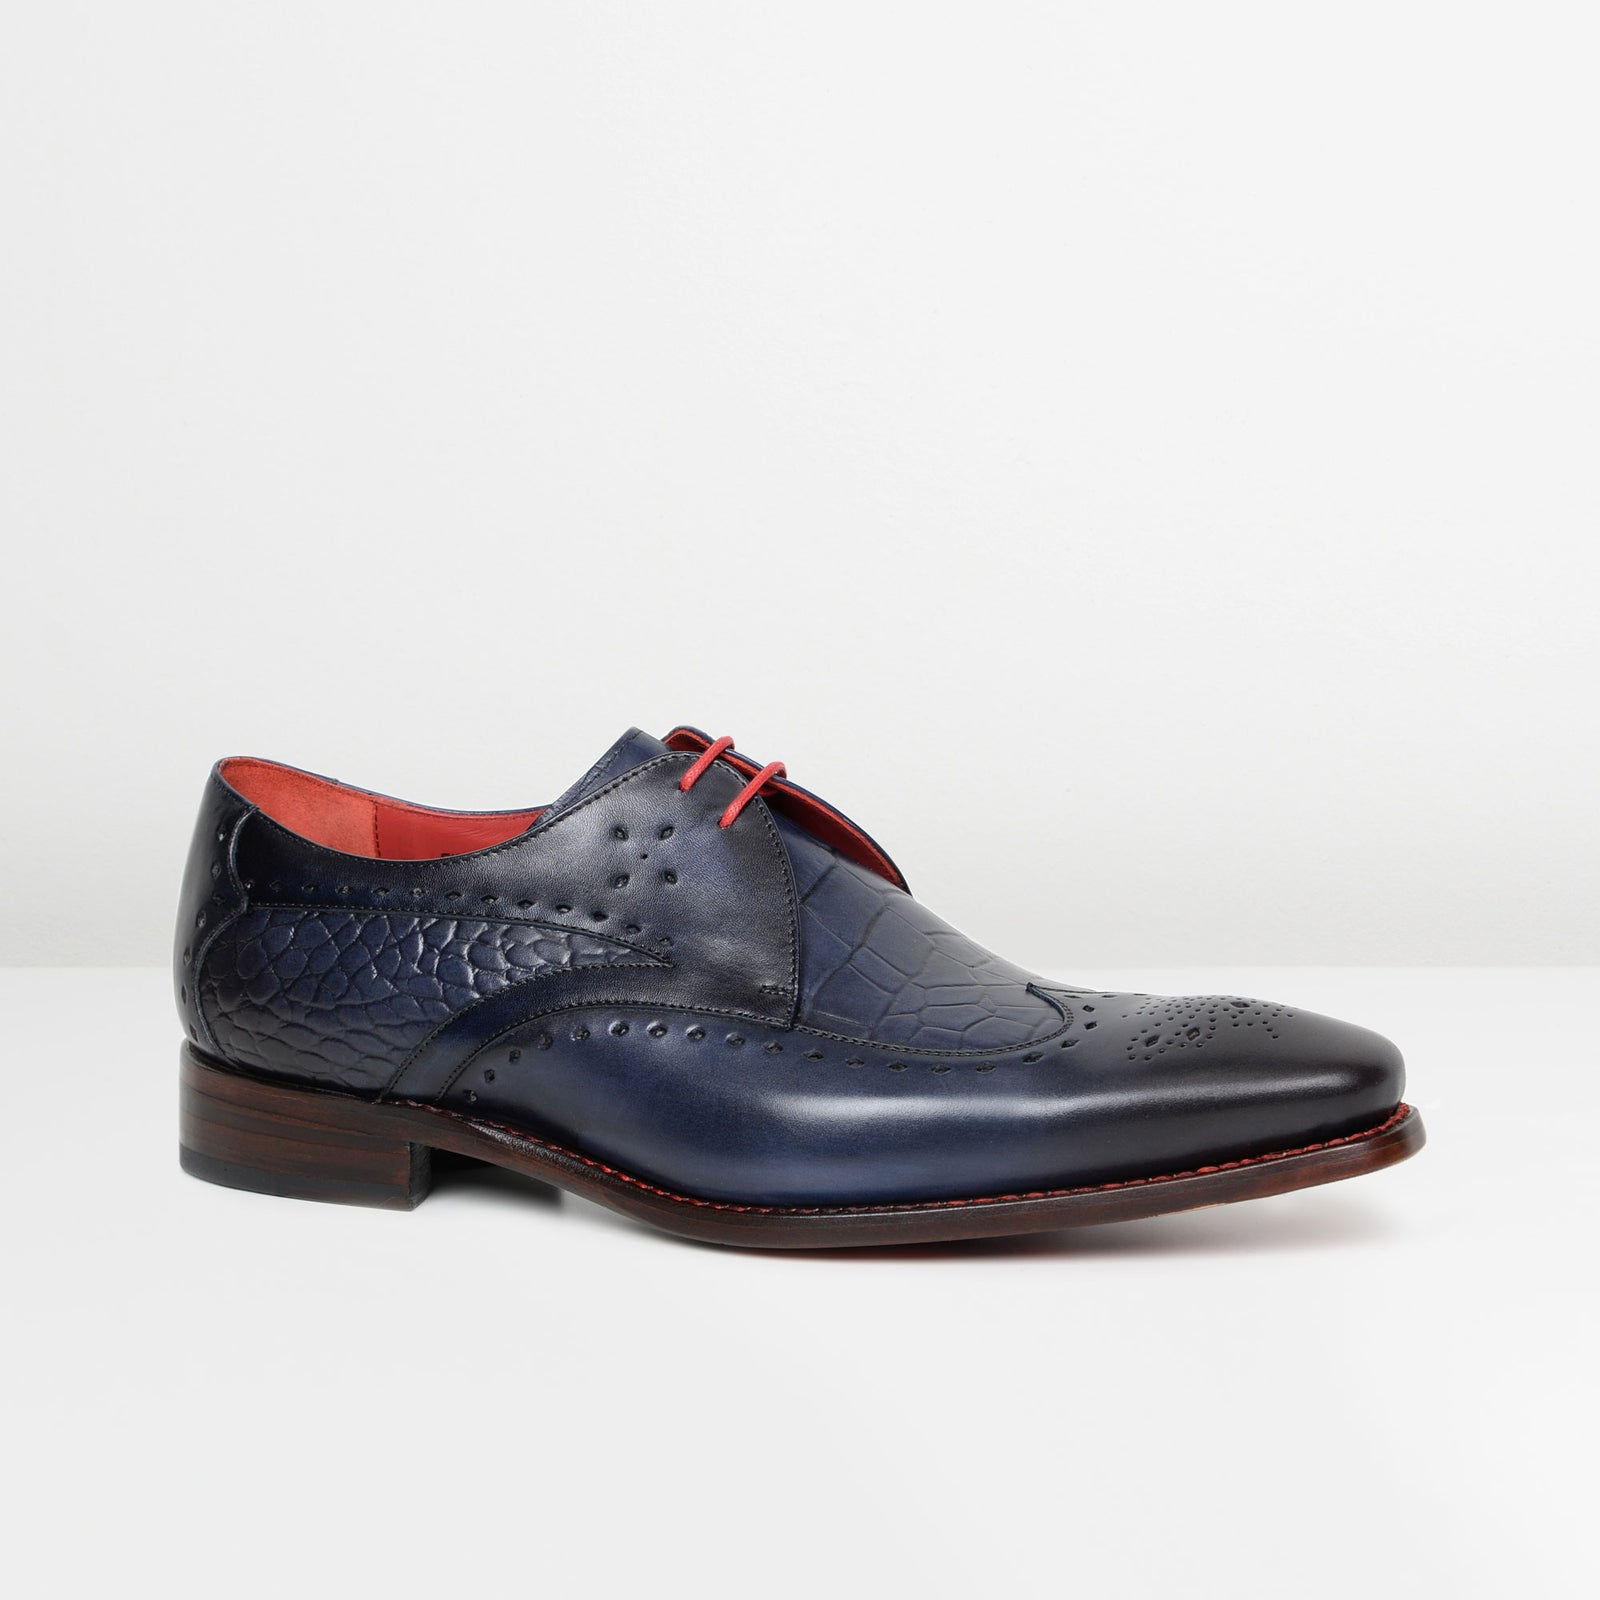 Crust Marine Hunger 'Firefly' Tie Gibson Brogues